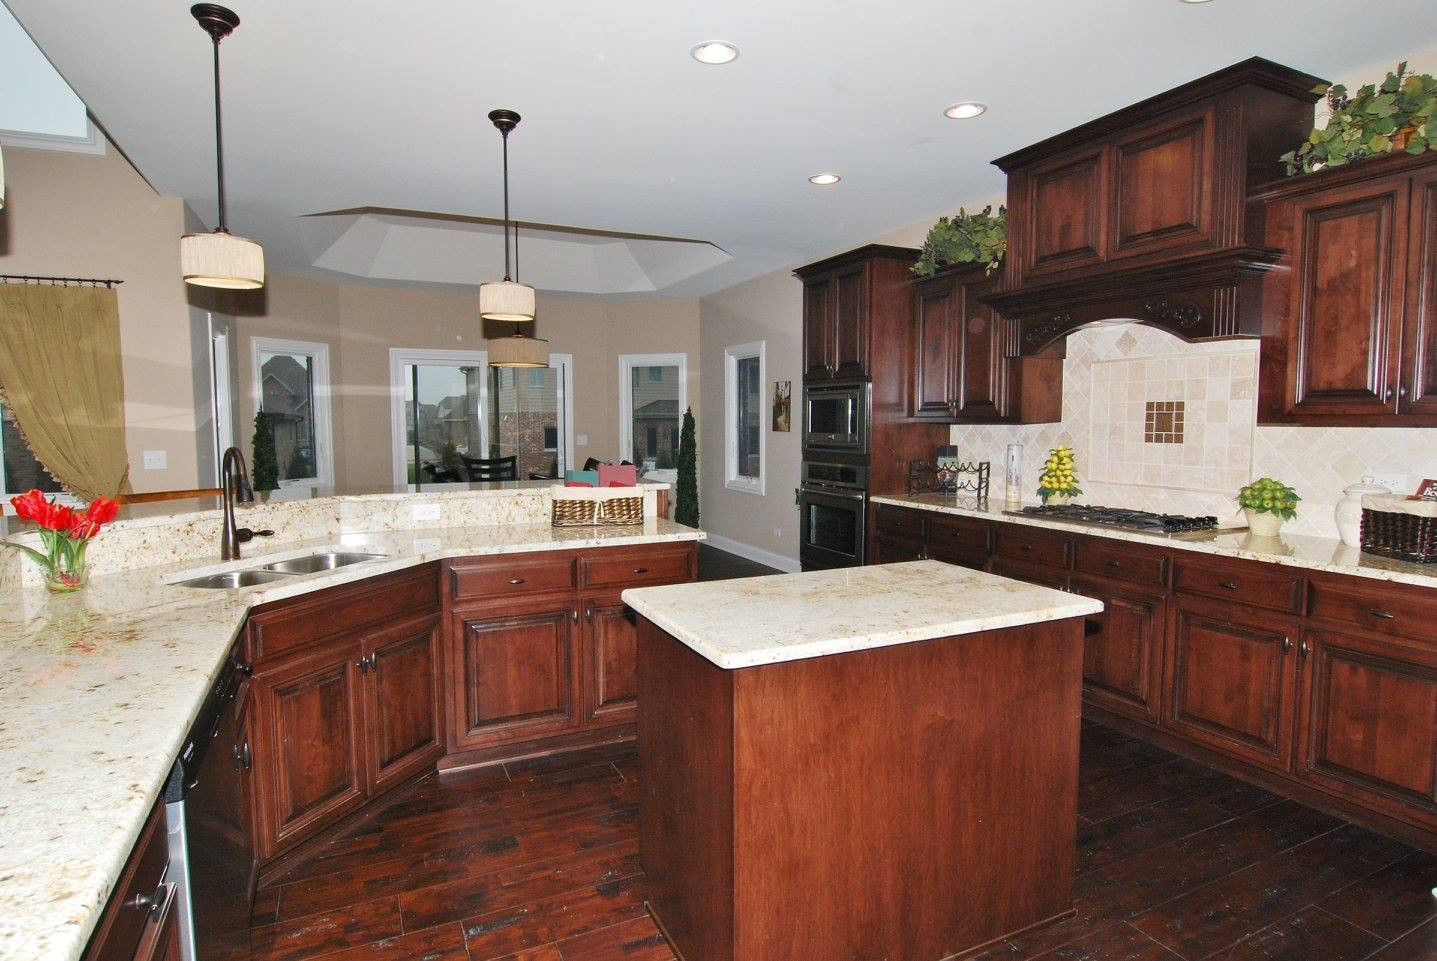 Colonial Gold Granite Kitchen Homer Glen Granite Countertops Insignia Stone Kitchen Projects